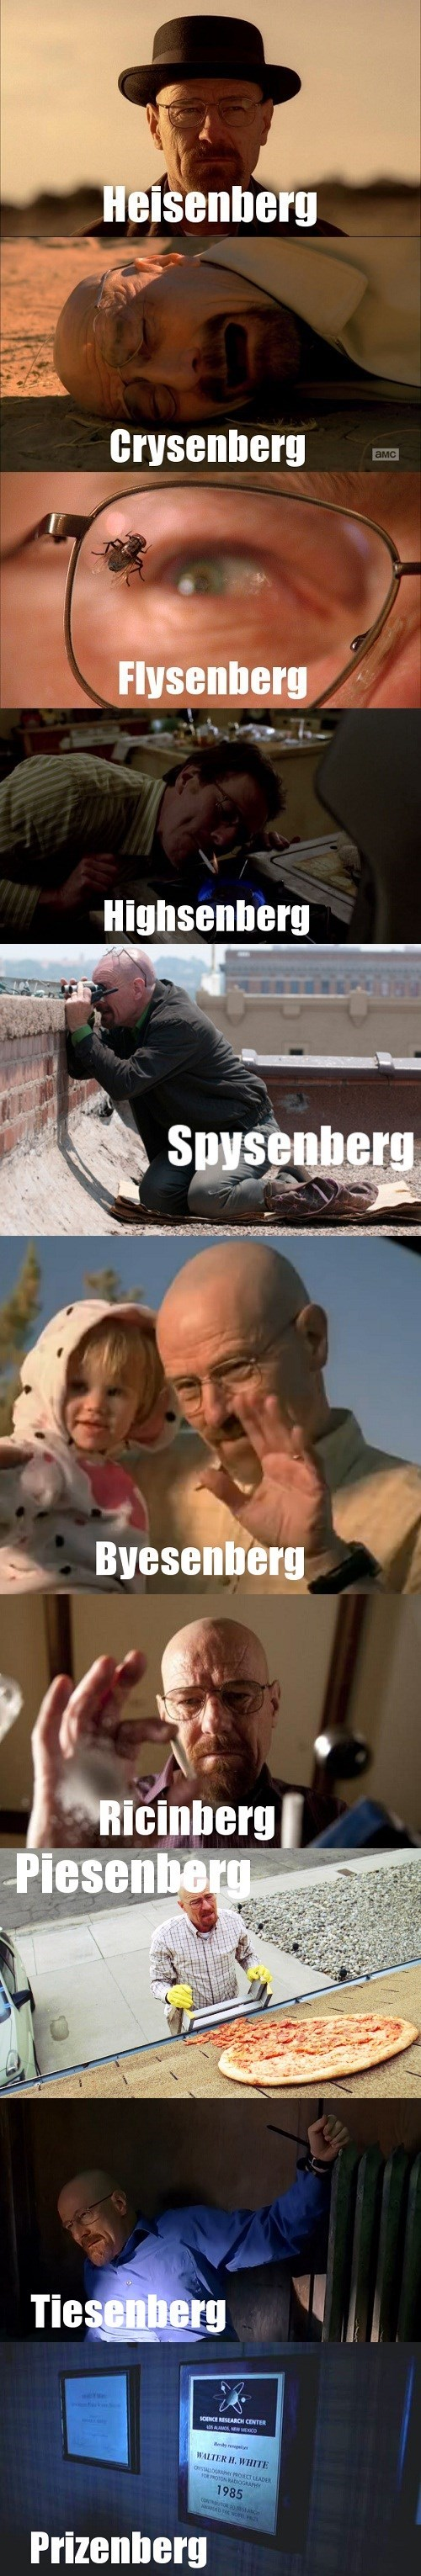 breaking bad,heisenberg,tv shows